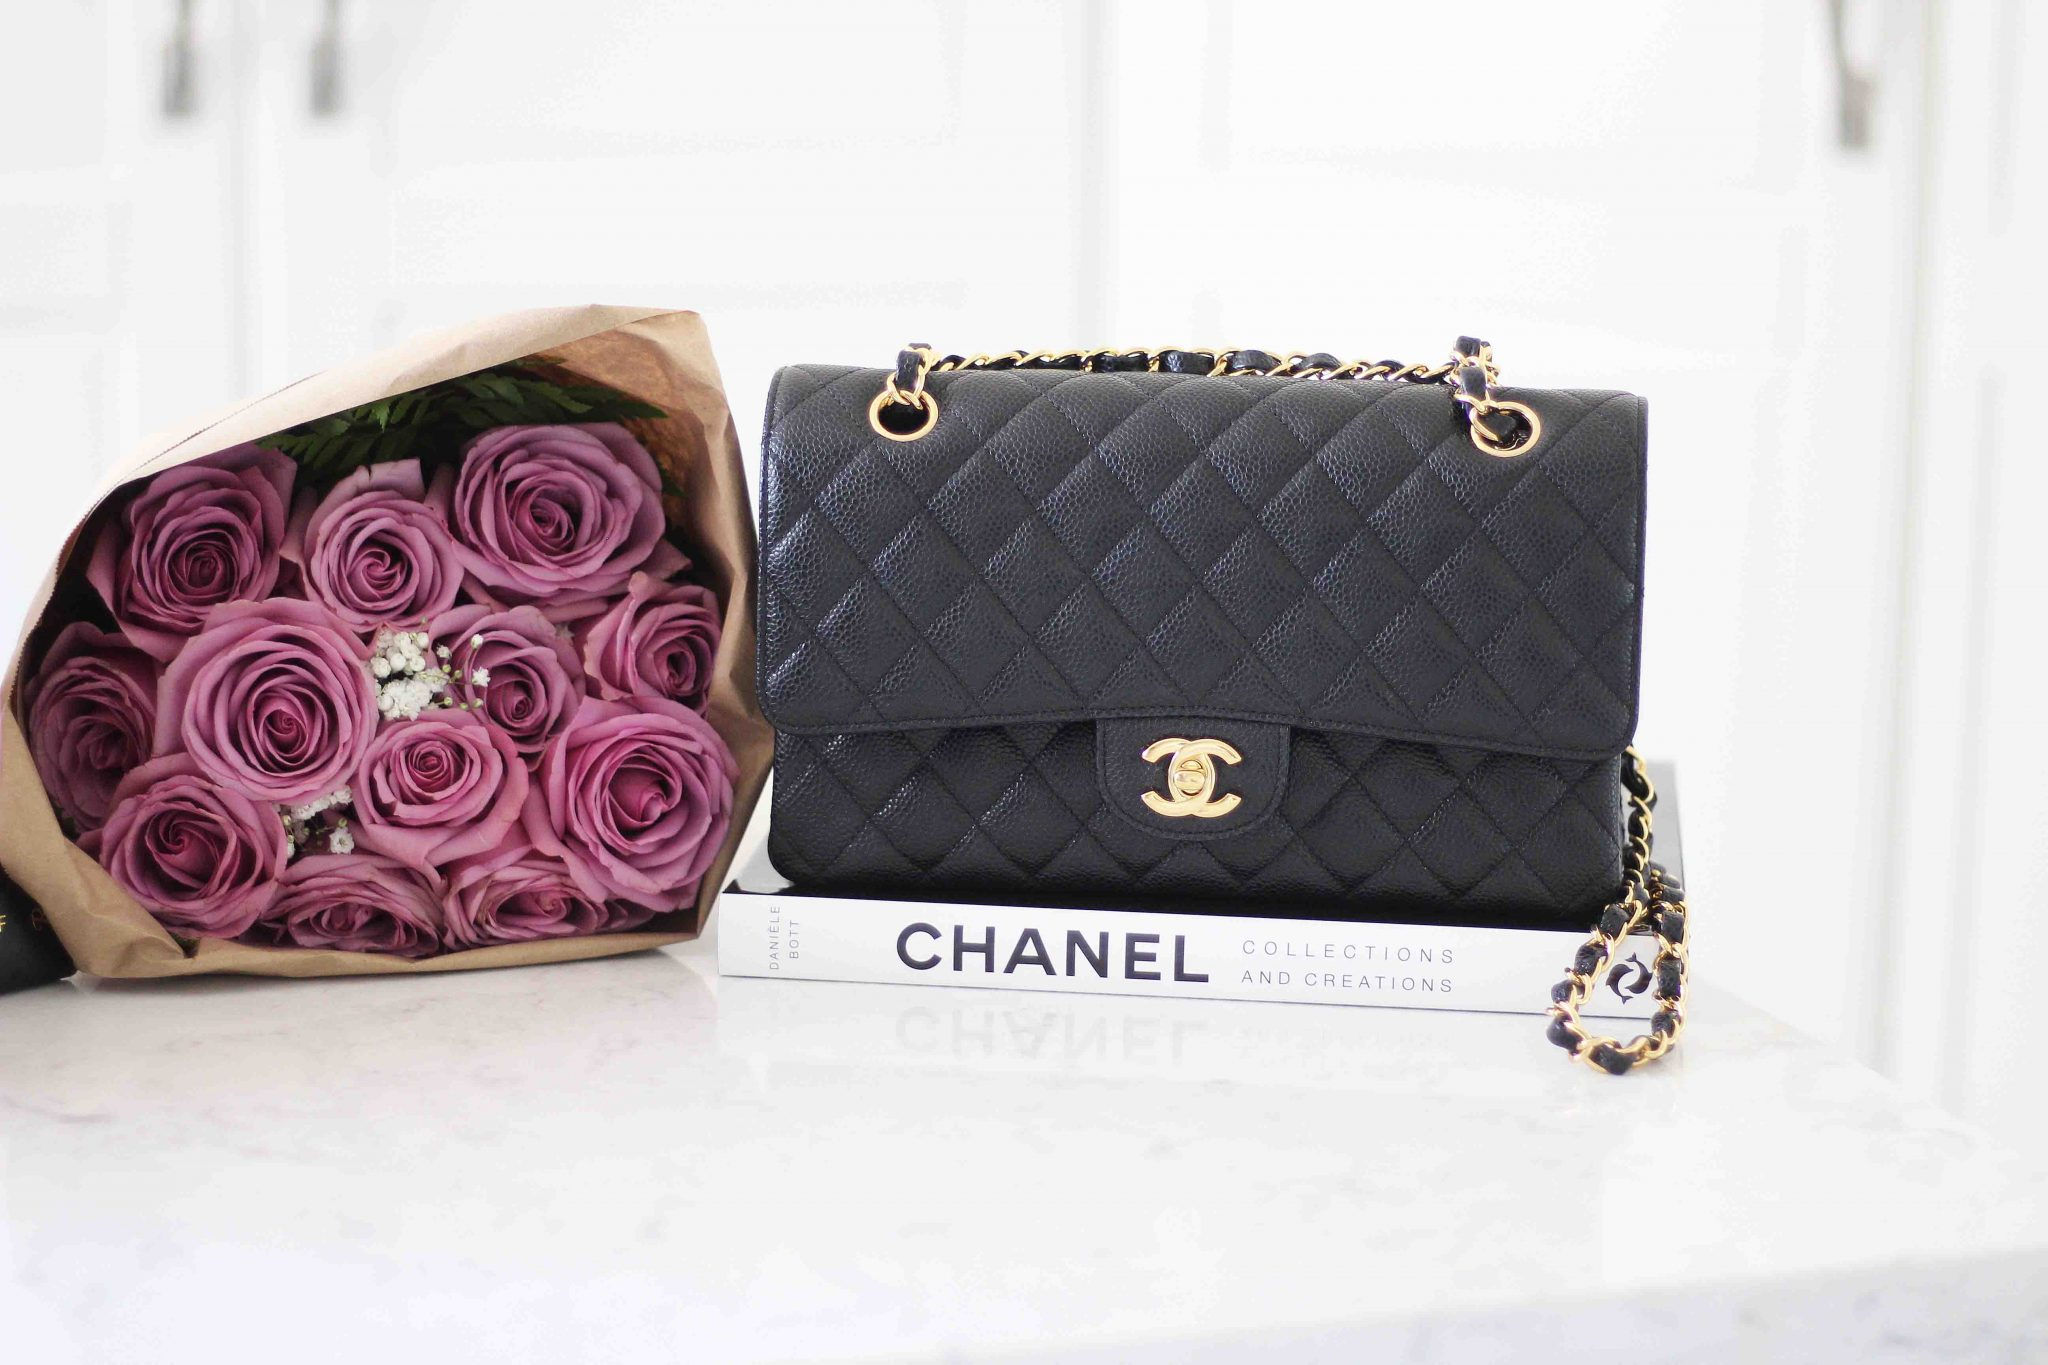 Comparing the Gucci GG Matelassé to the Chanel Classic Flap Bag ...